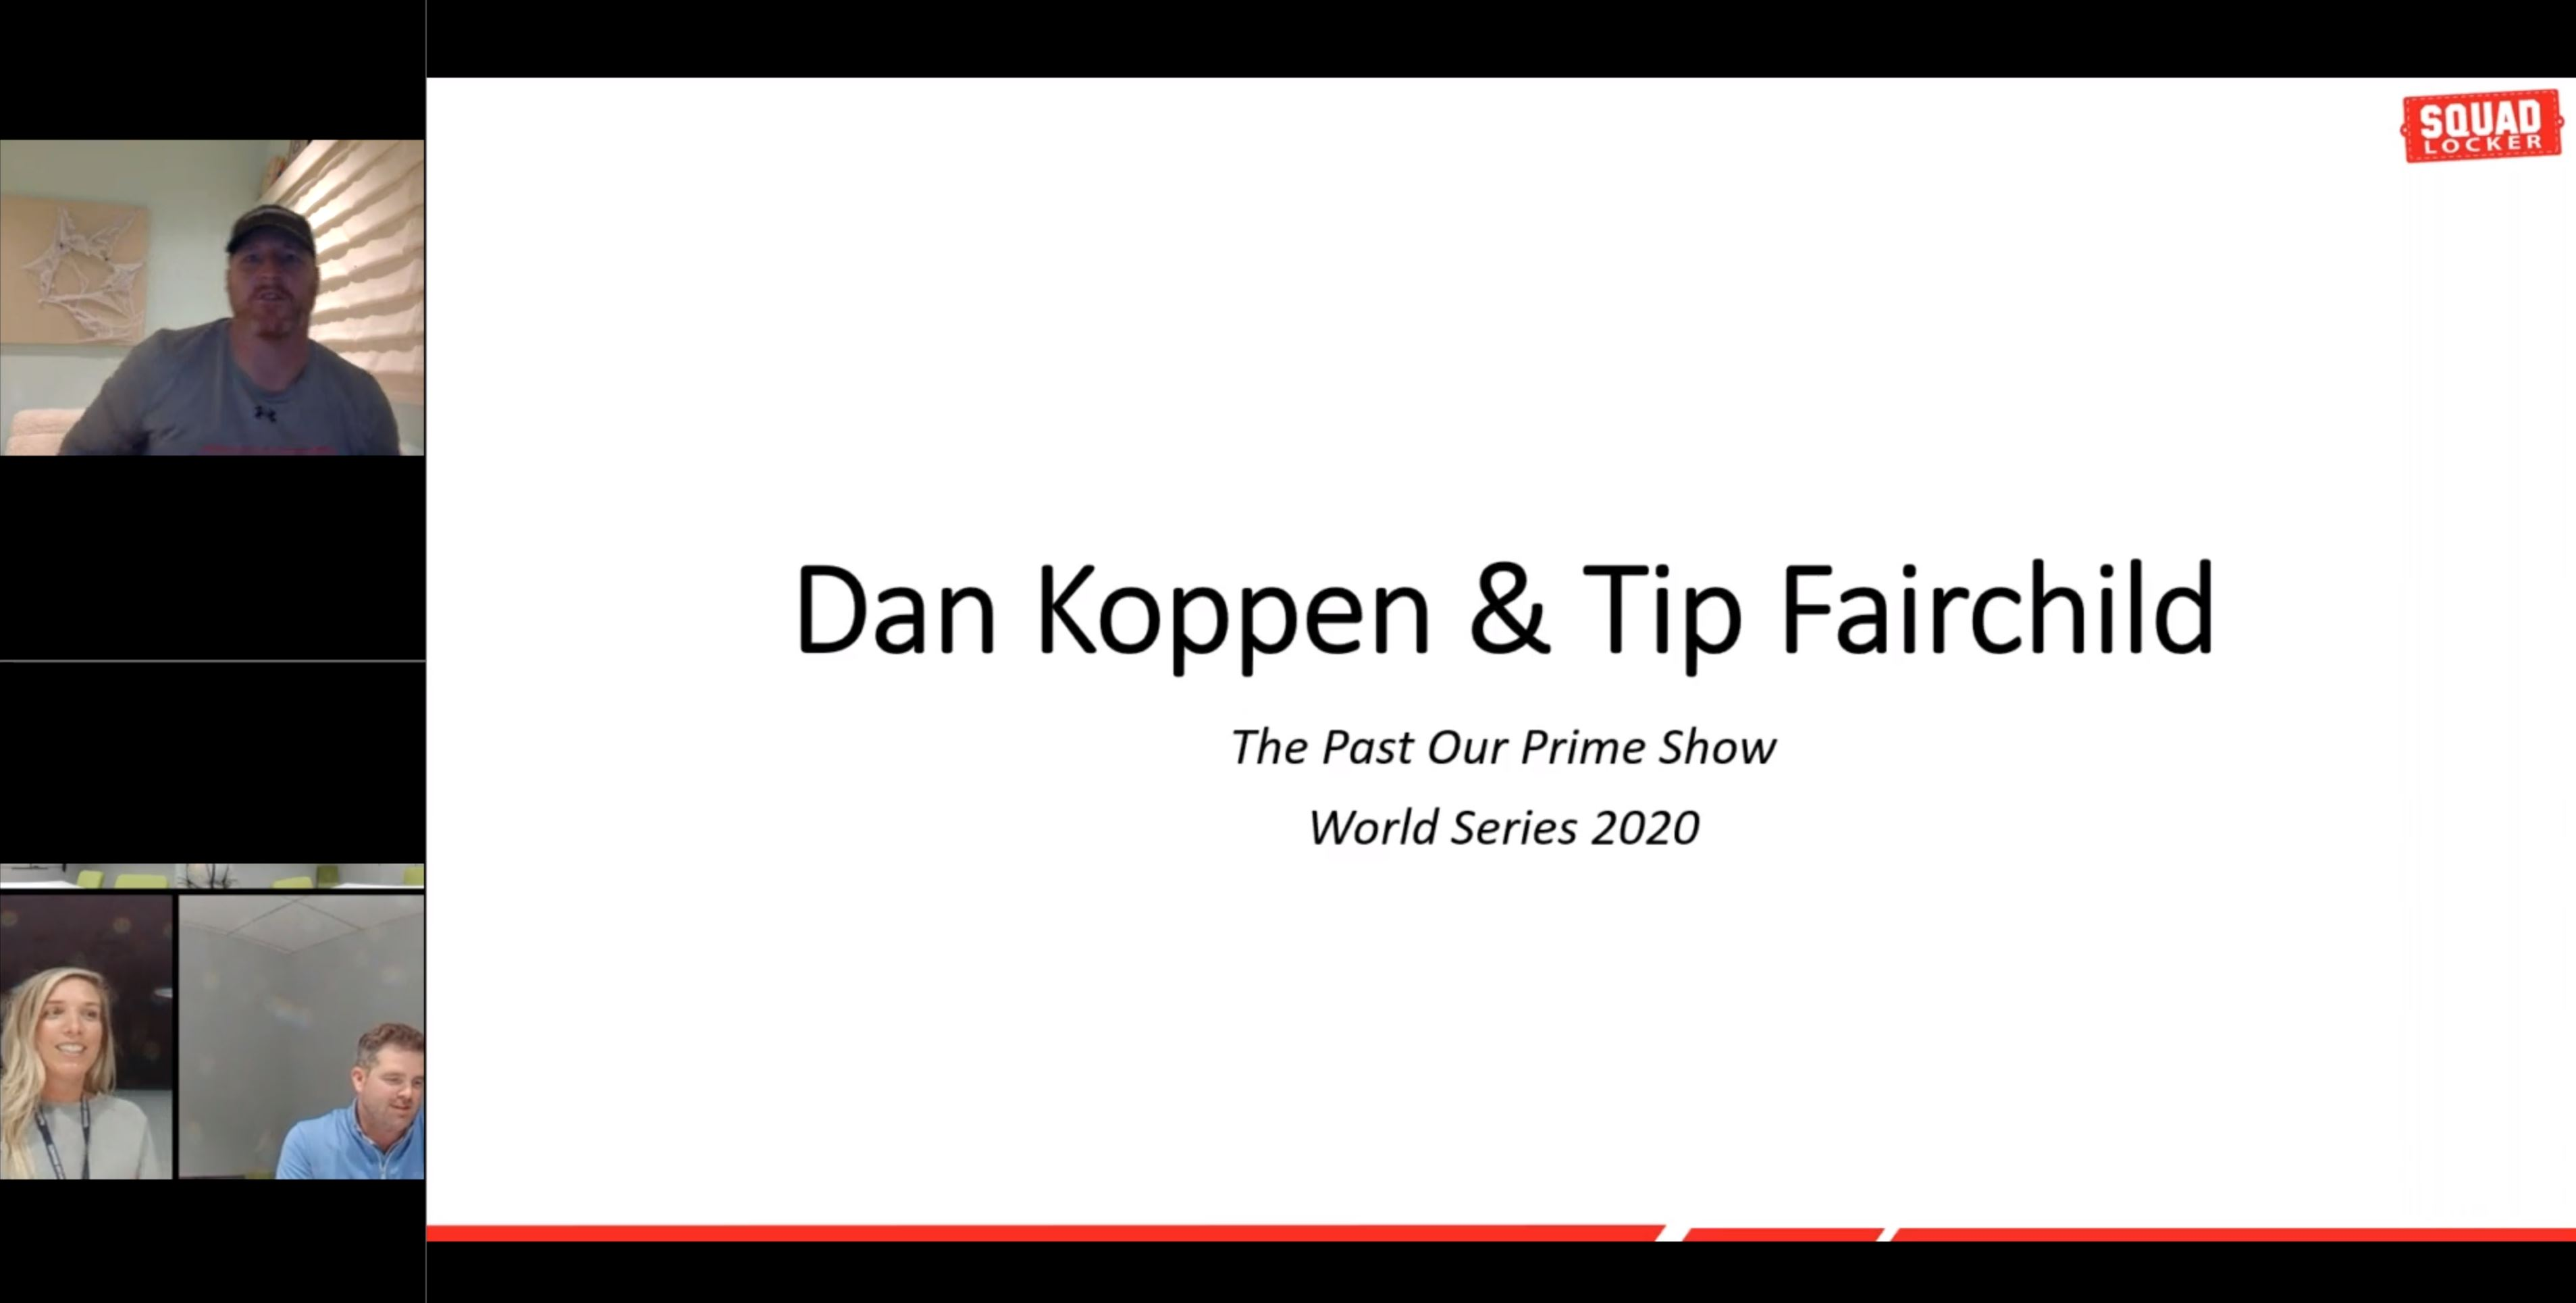 Tip Fairchild and Dan Koppen - Past Our Prime Show - Guest Killy Pickard and the World Series